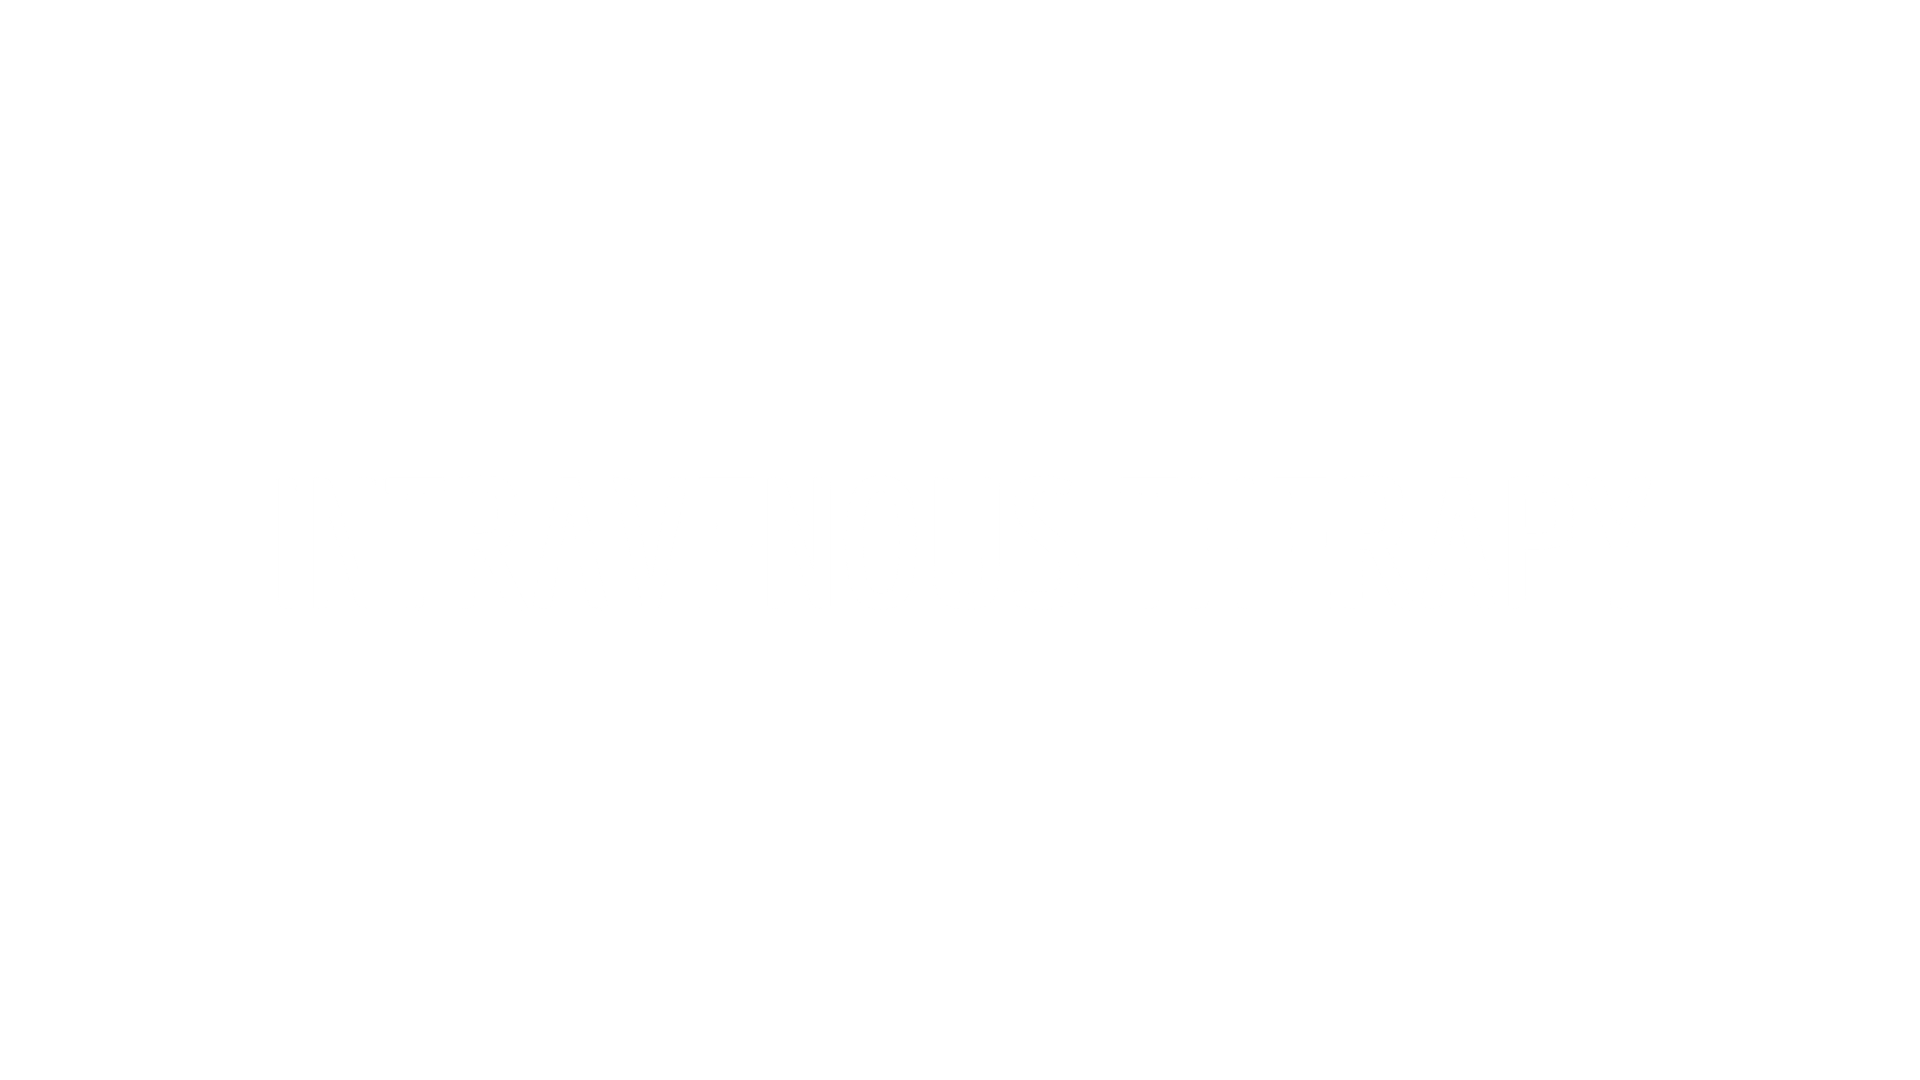 IV THERAPY INTRO.png